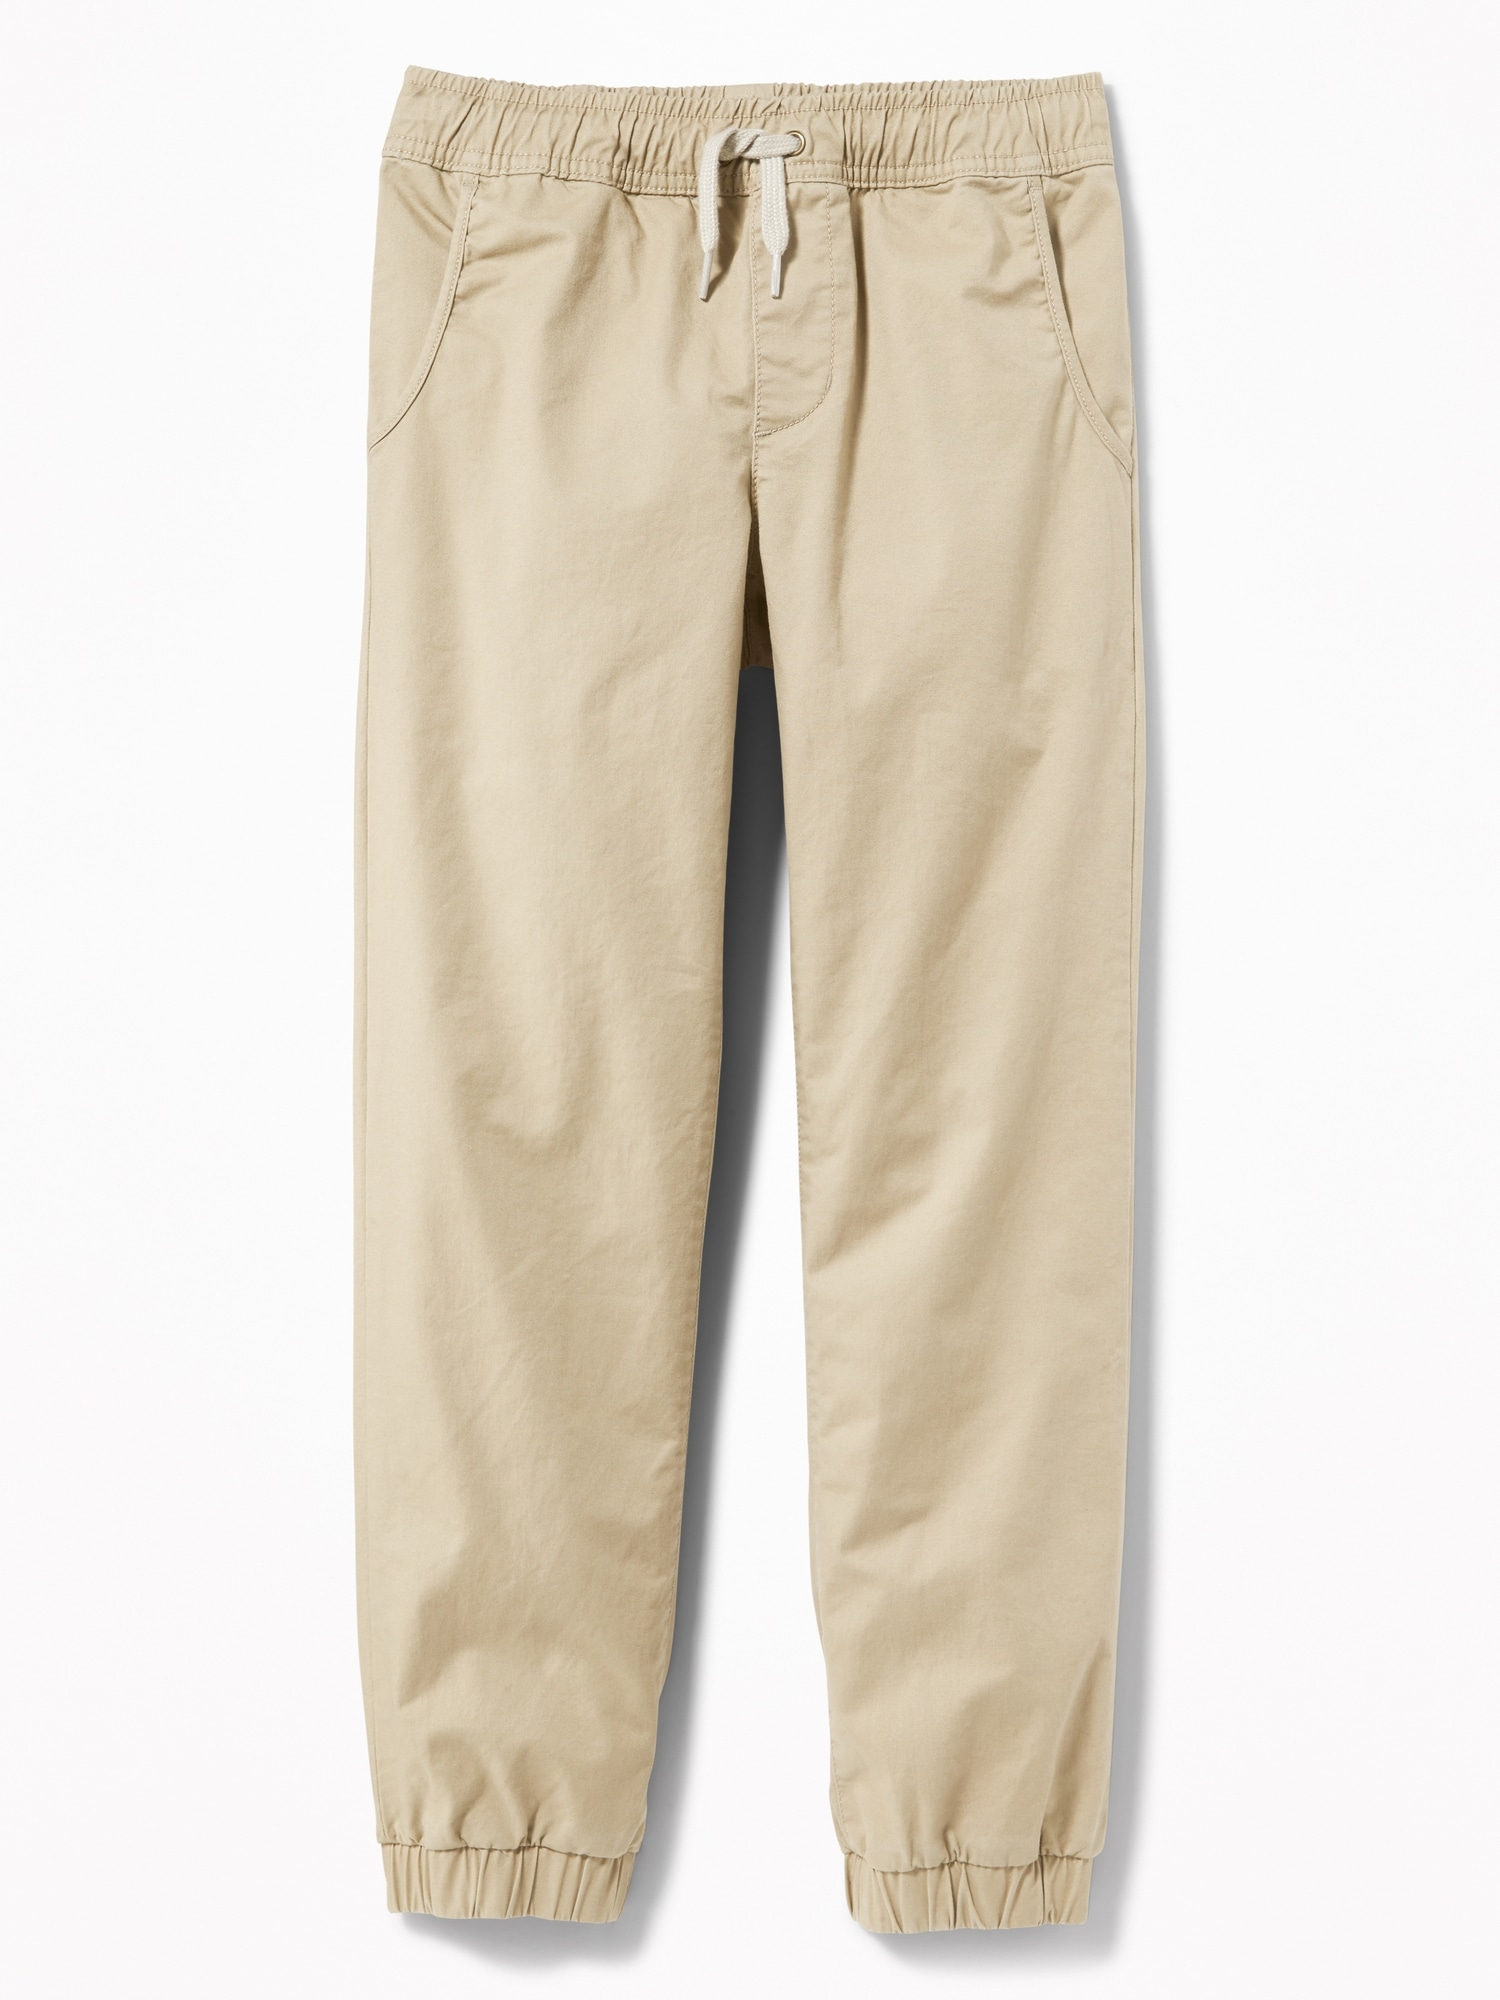 2f5a9131 Built-In Flex Twill Joggers for Boys | Old Navy